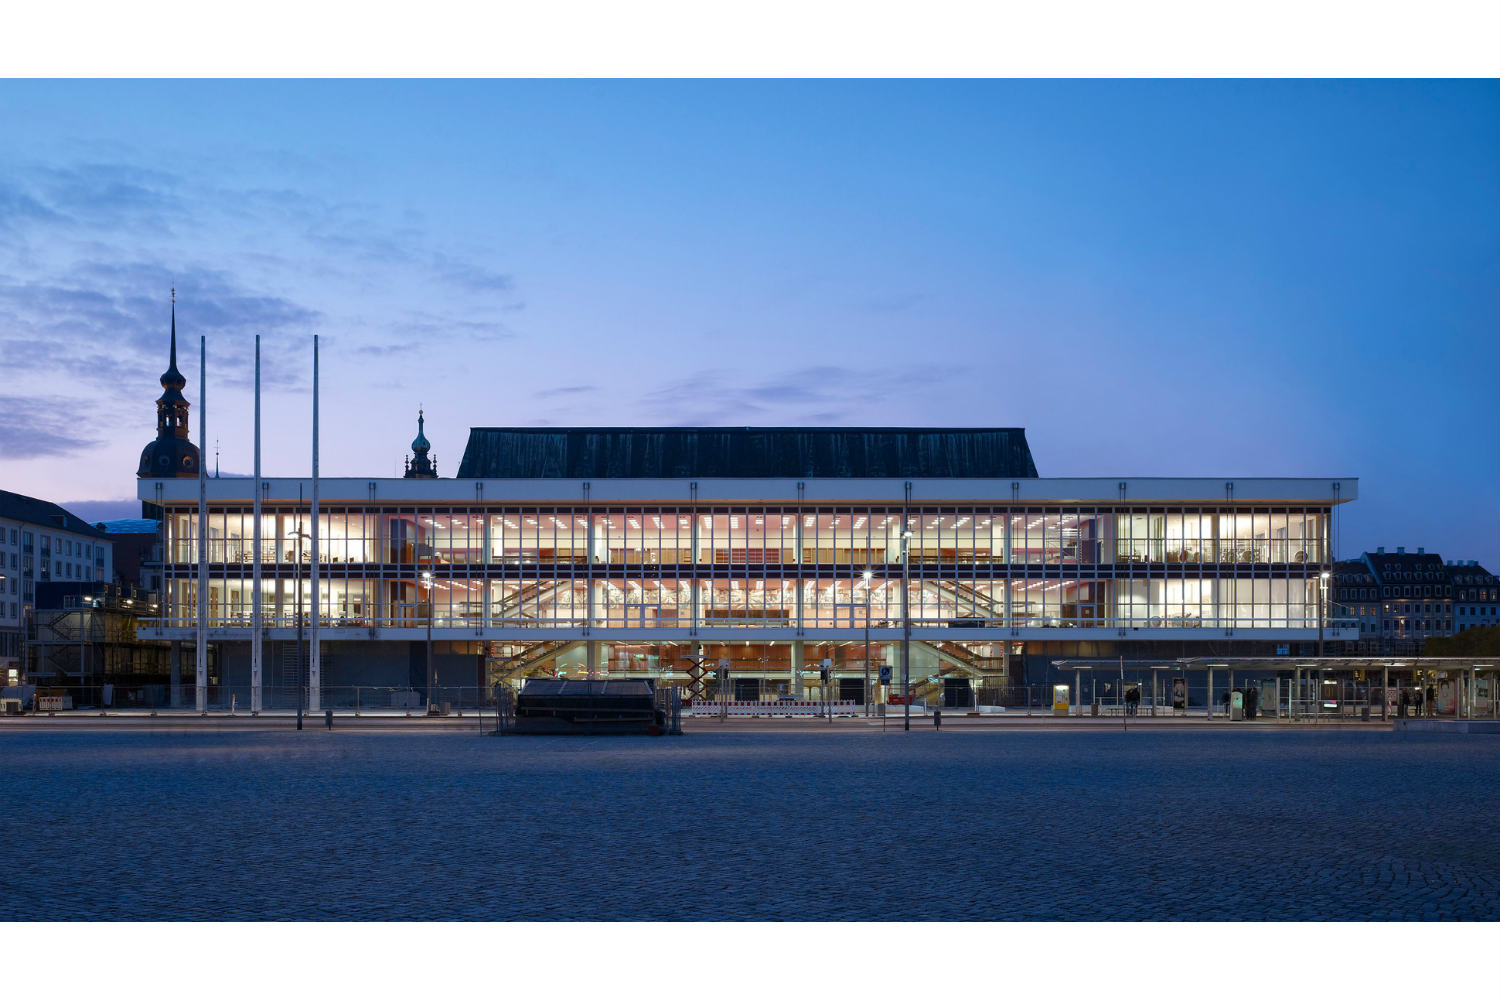 Located in the middle of Dresden's old town, the Kulturpalast highlights with its glass facades and striking roof structure. ADA (WSDG) was the responsible acoustician and consultant for the renovation. Exterior Night